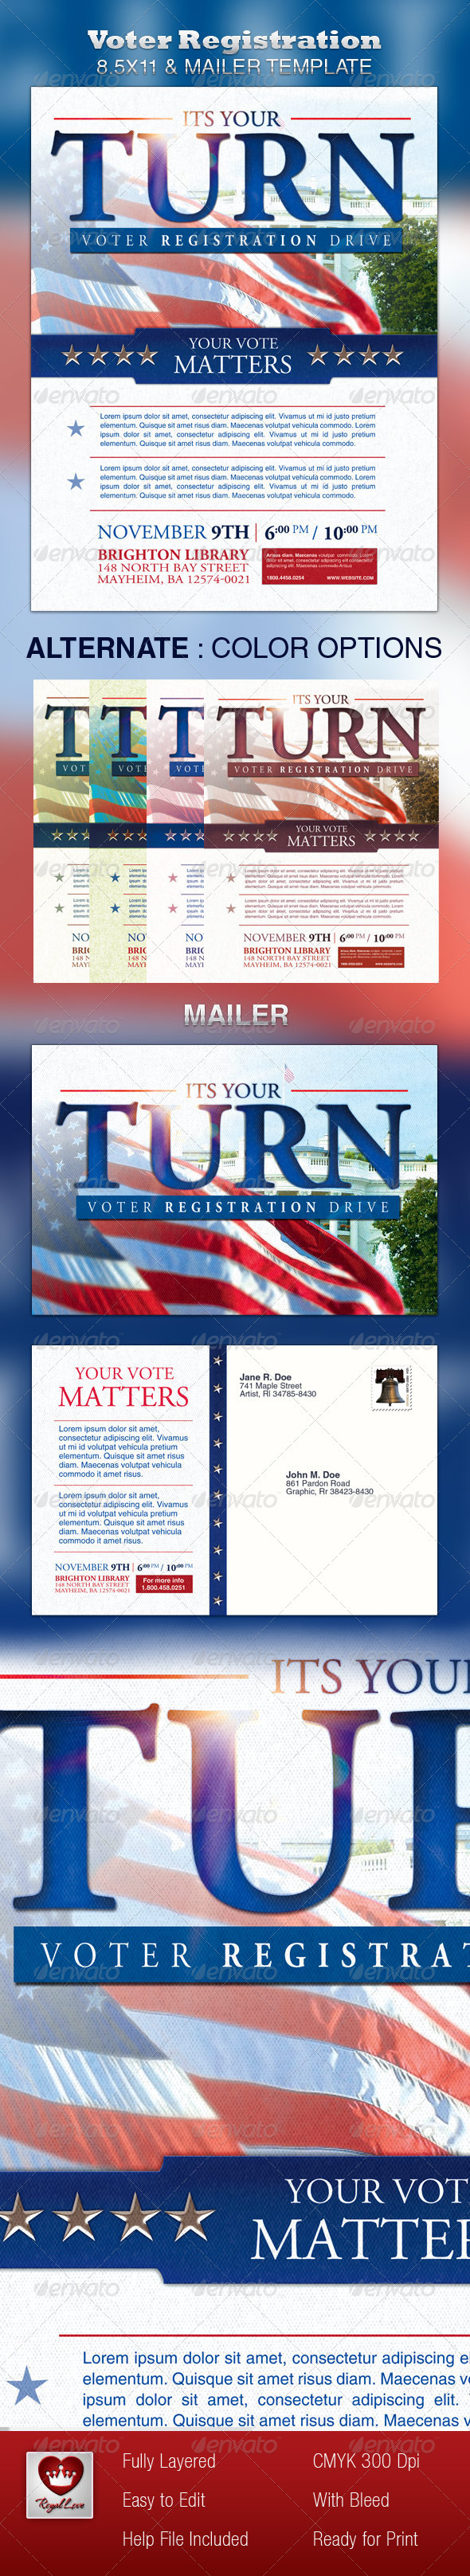 GraphicRiver Voter Registration 8.5x11 & Mailer 3263443